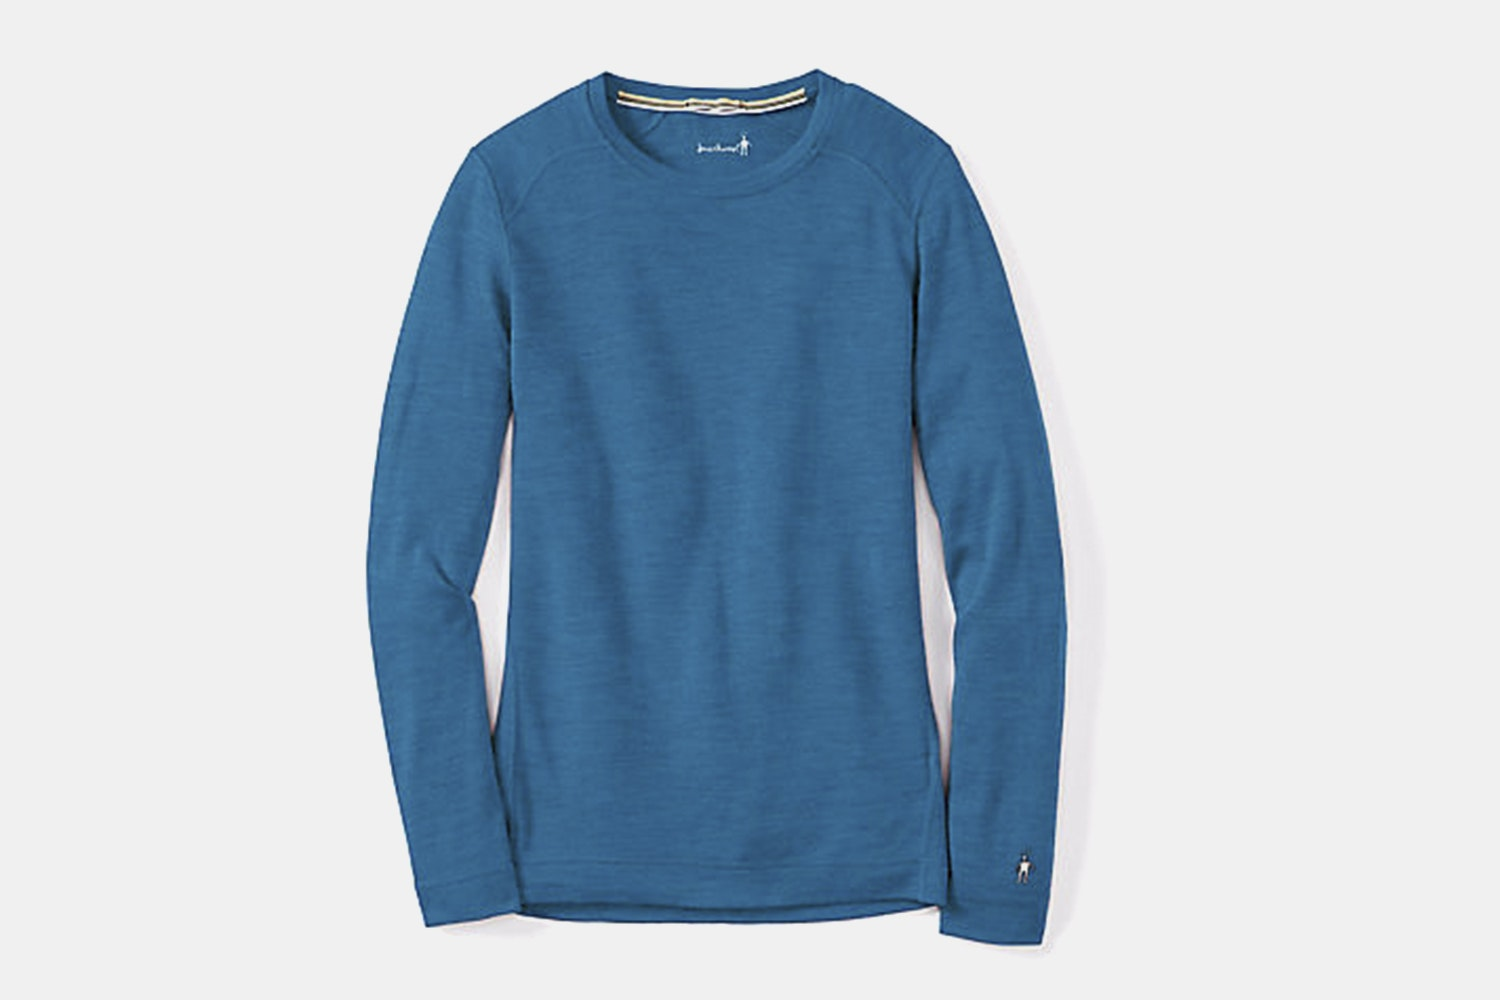 Women's, Glacial Blue Heather